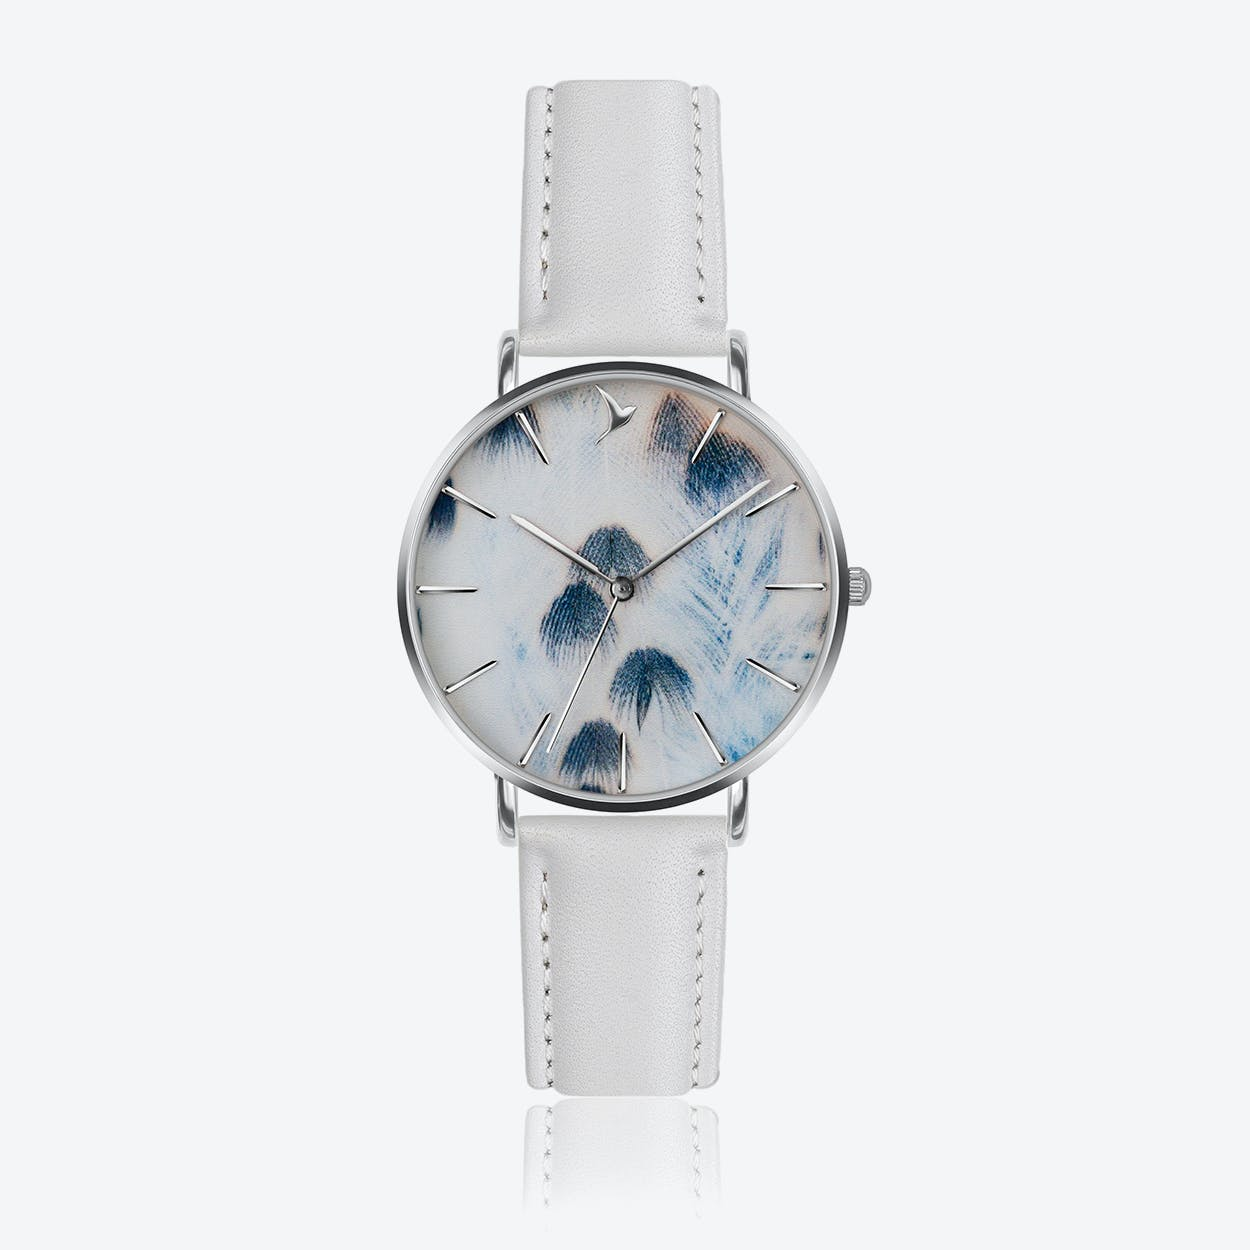 Feather Print Watch in White Leather/ Silver Case ⌀38